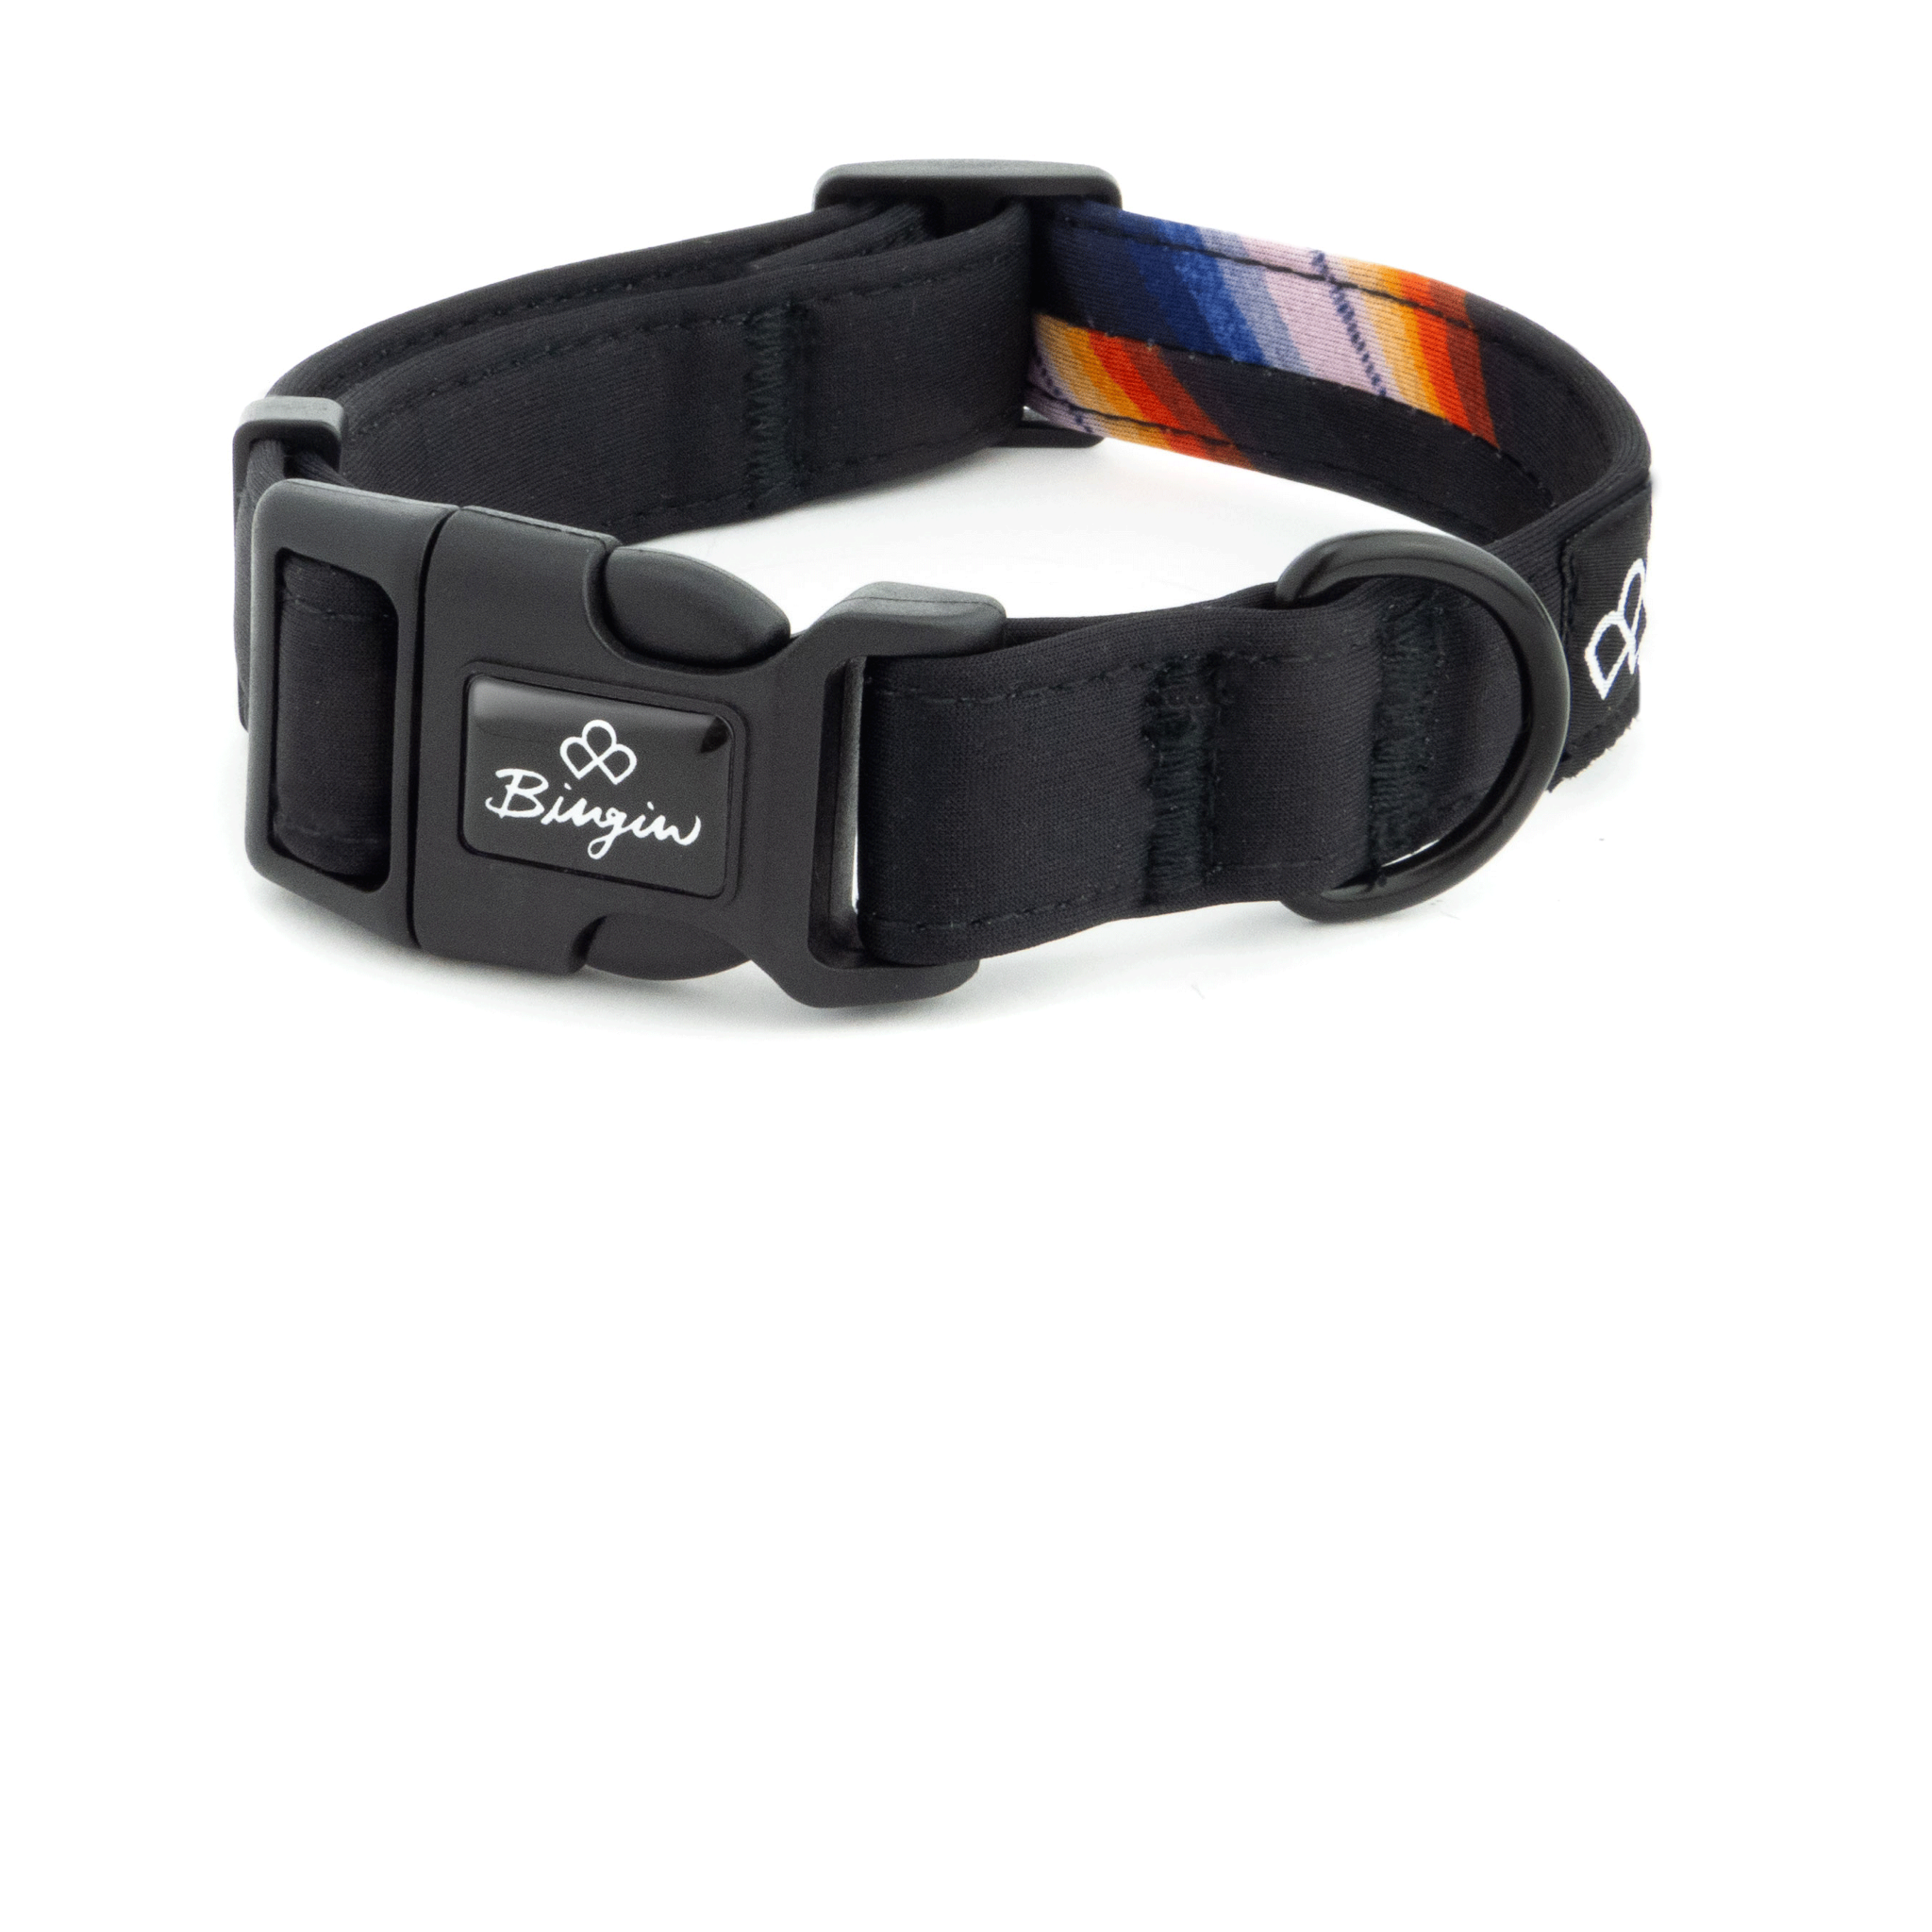 Bingin Dog 'Back in Black' waterproof dog collars. A solid black print with one blue, orange and white serape stripe detail.